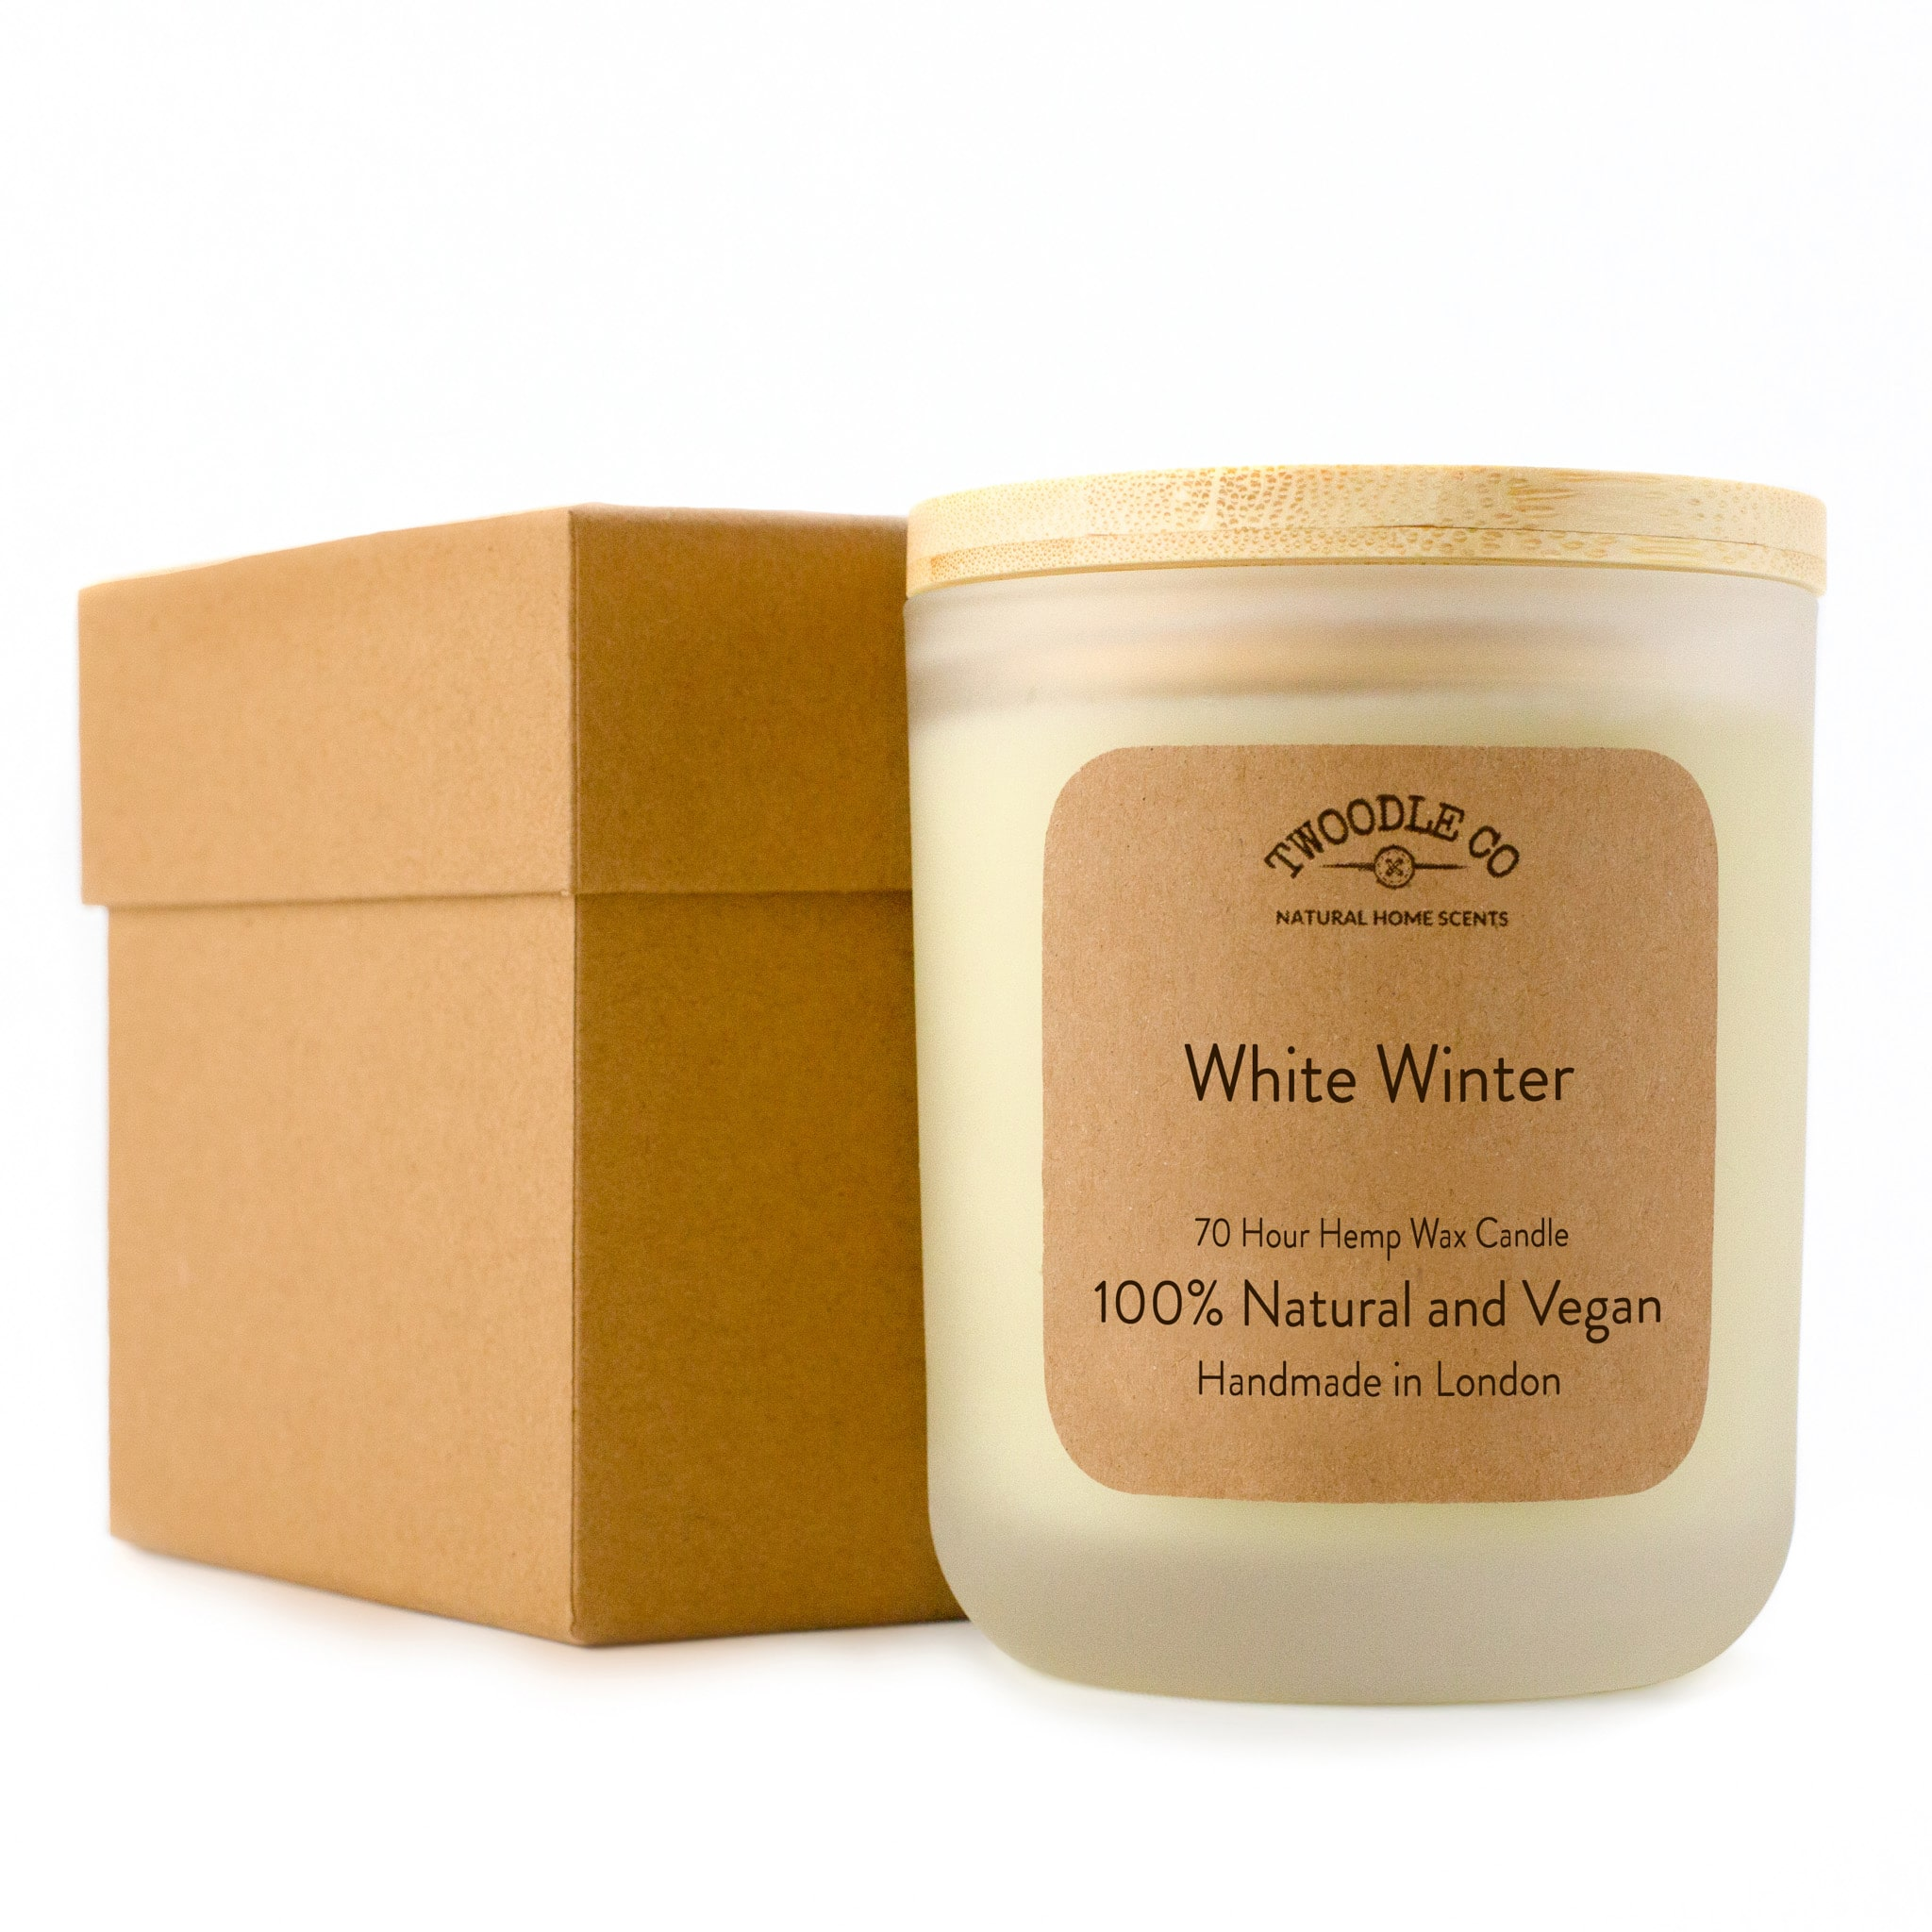 White Winter Large Scented Candle 70 Hour